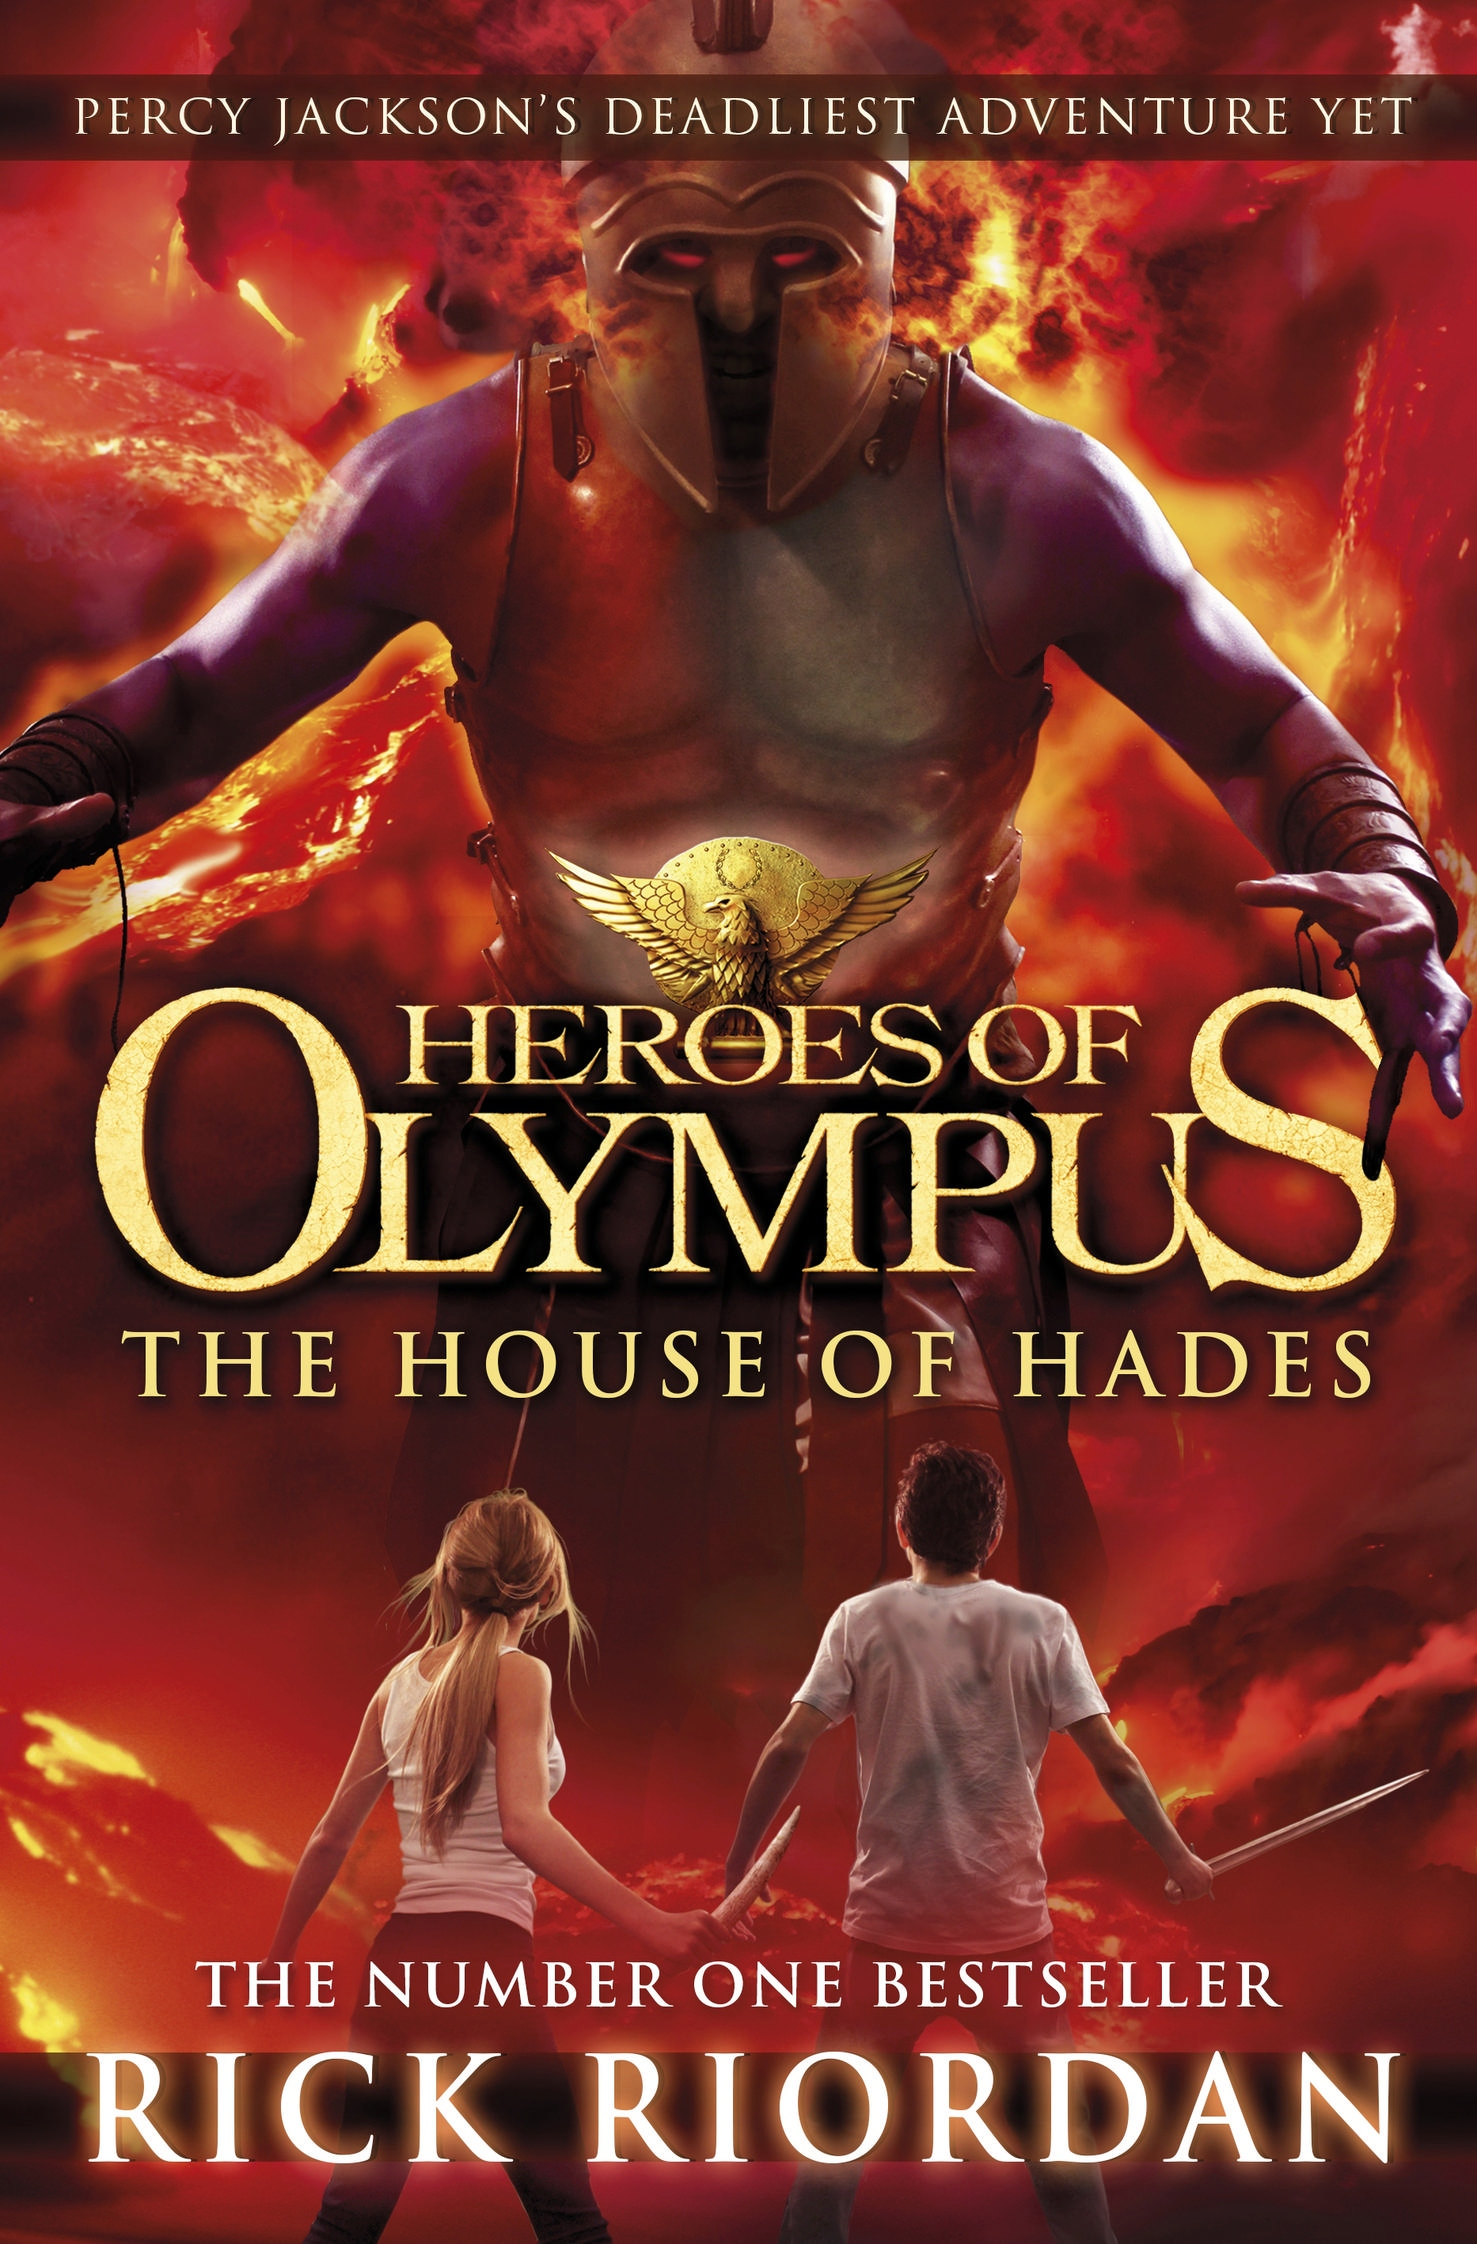 House of Hades  Heroes of Olympus  04  by Rick Riordan ReviewThe Heroes Of Olympus The House Of Hades